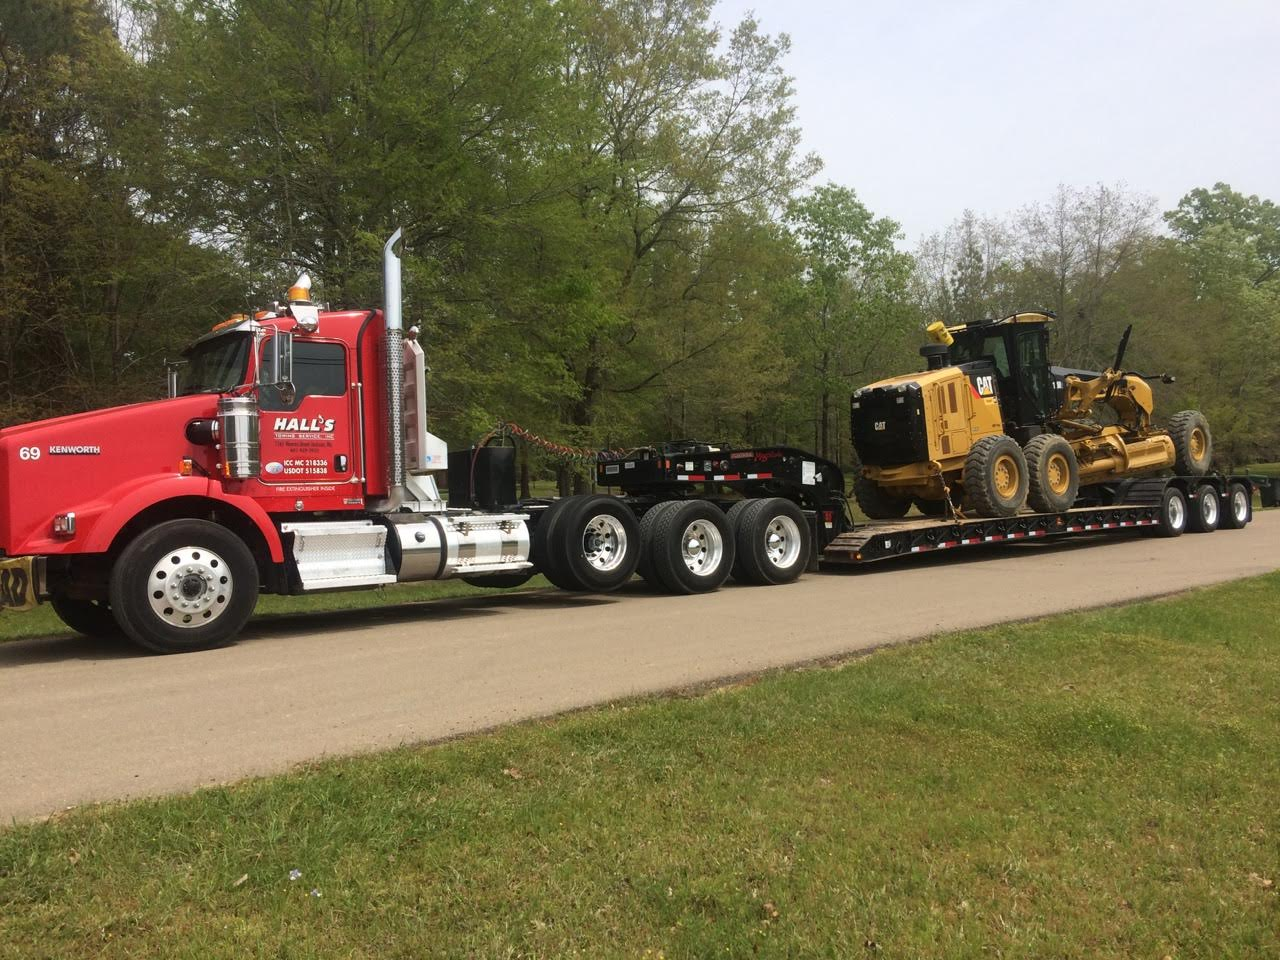 Hall's Towing Service image 12